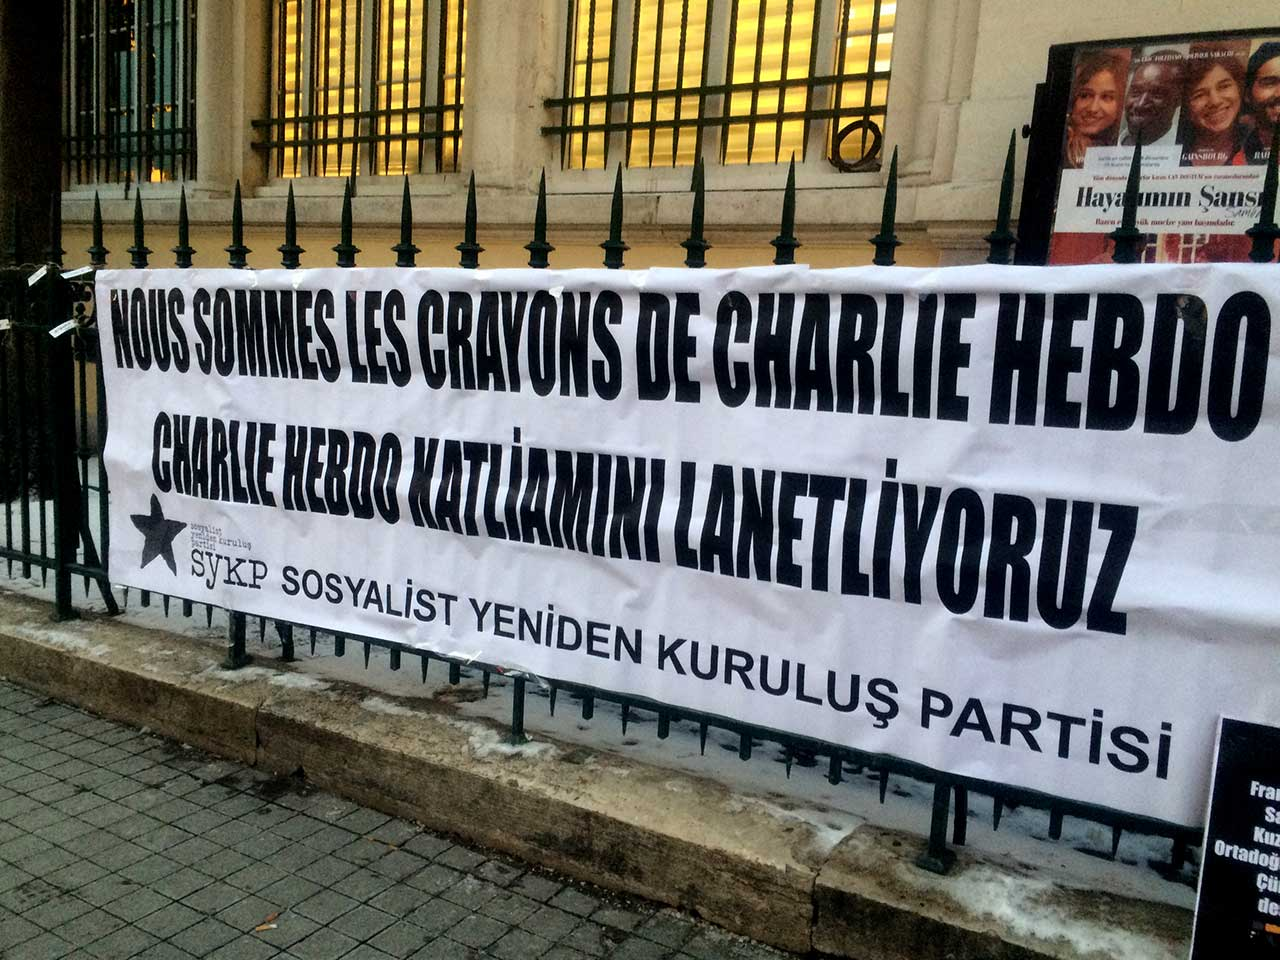 Charlie Hebdo support banner in Taksim, Istanbul (click to enlarge)